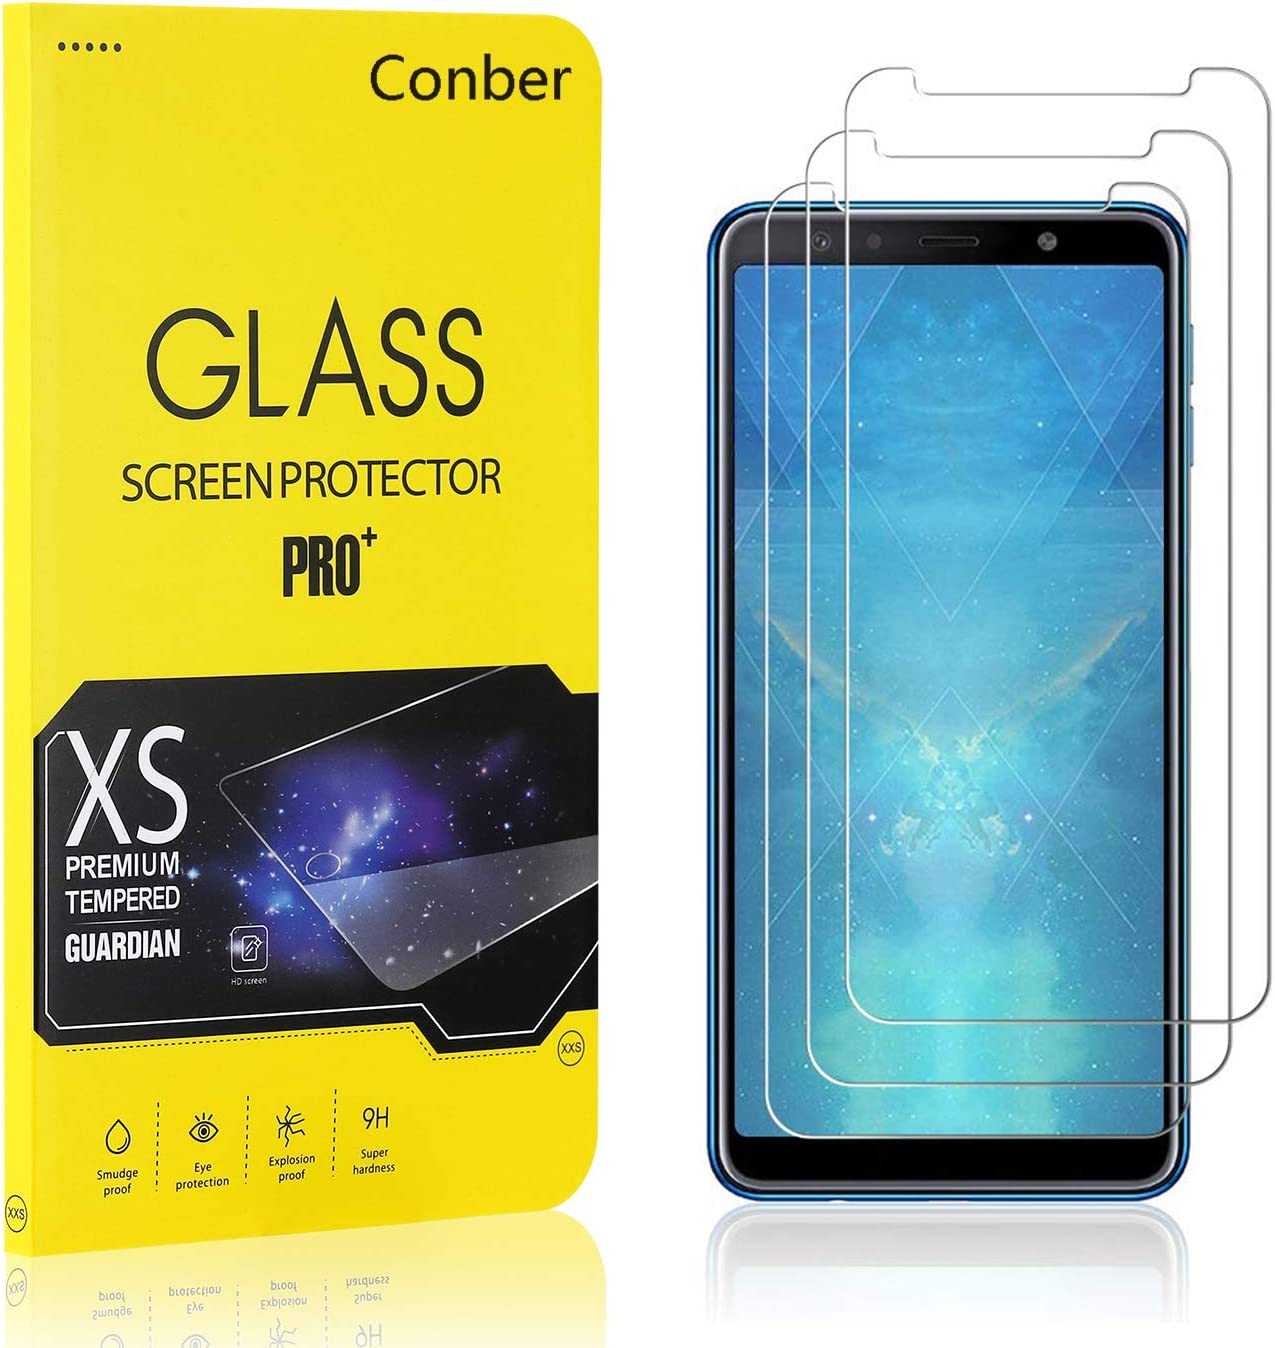 Case Friendly Premium Tempered Glass Screen Protector for Samsung Galaxy A7 2018 Conber Scratch-Resistant Screen Protector for Samsung Galaxy A7 2018, Anti-Shatter 3 Pack